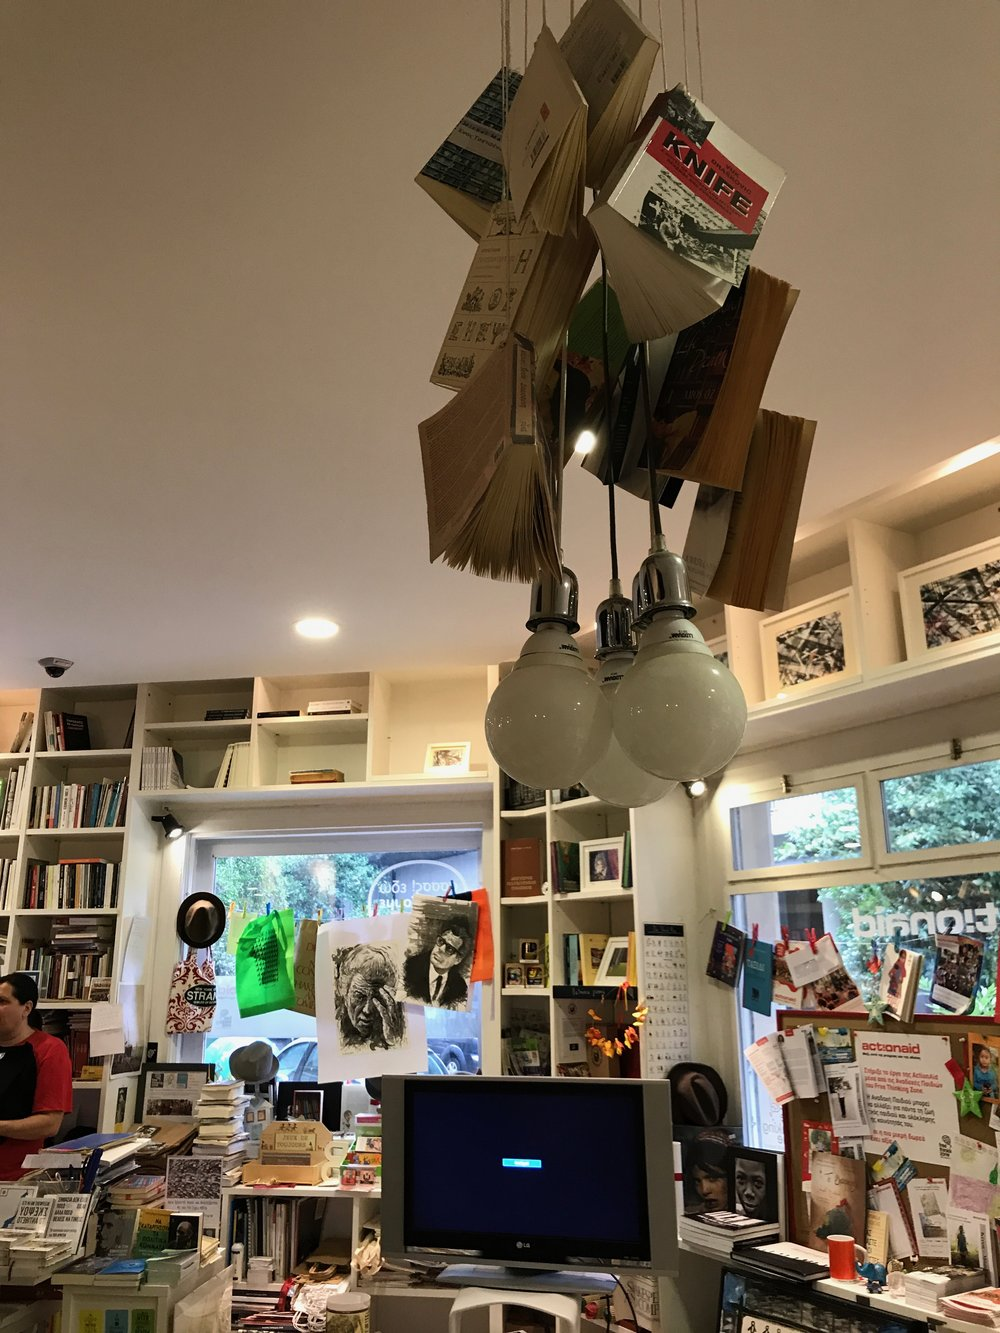 Decor inside of Free Thinking Zone bookshop and activism space . Photo Credit: Erin Latham